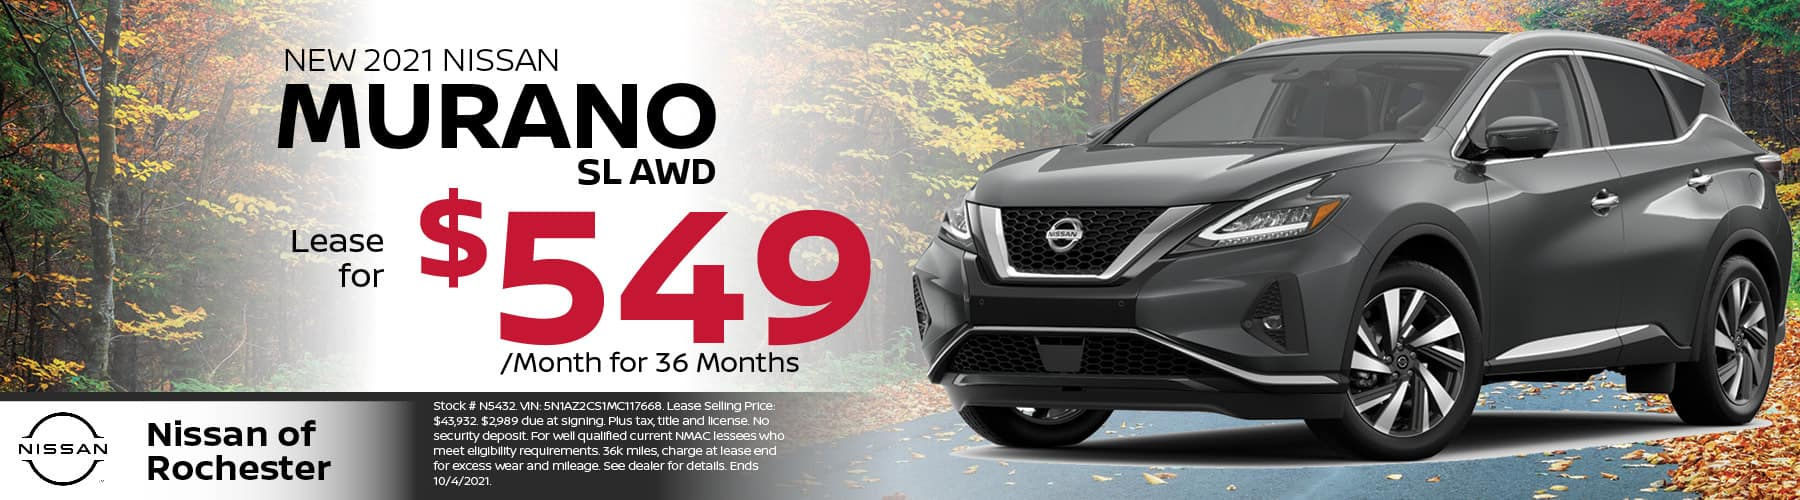 2021 NIssan Murano Special Offer | Nissan of Rochester, MN